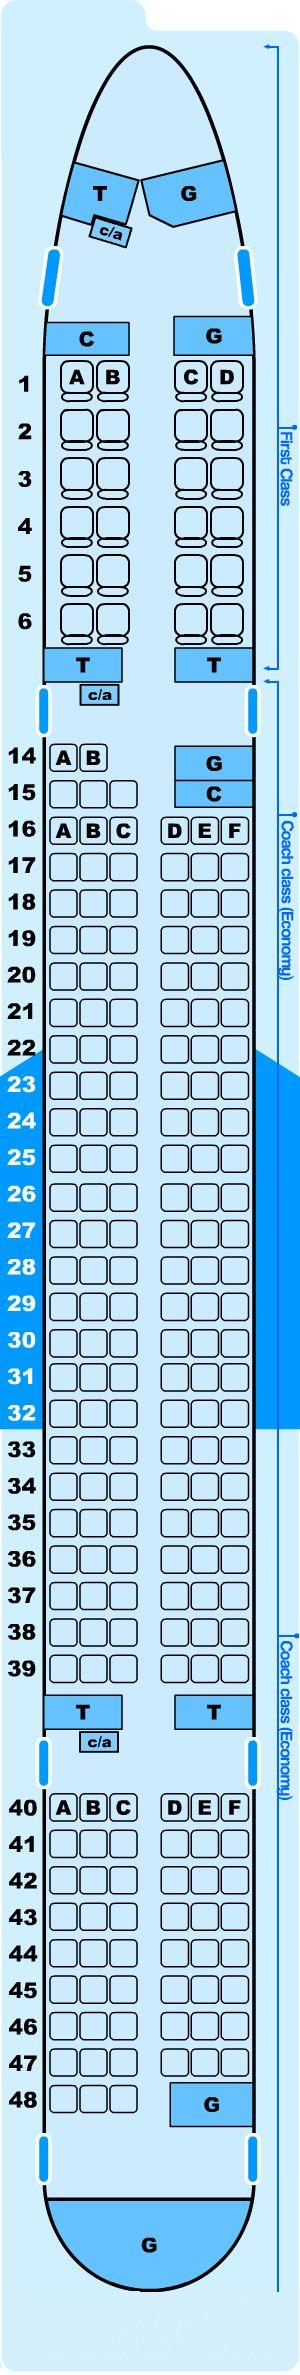 Seat map for Northwest Airlines Boeing B757 300